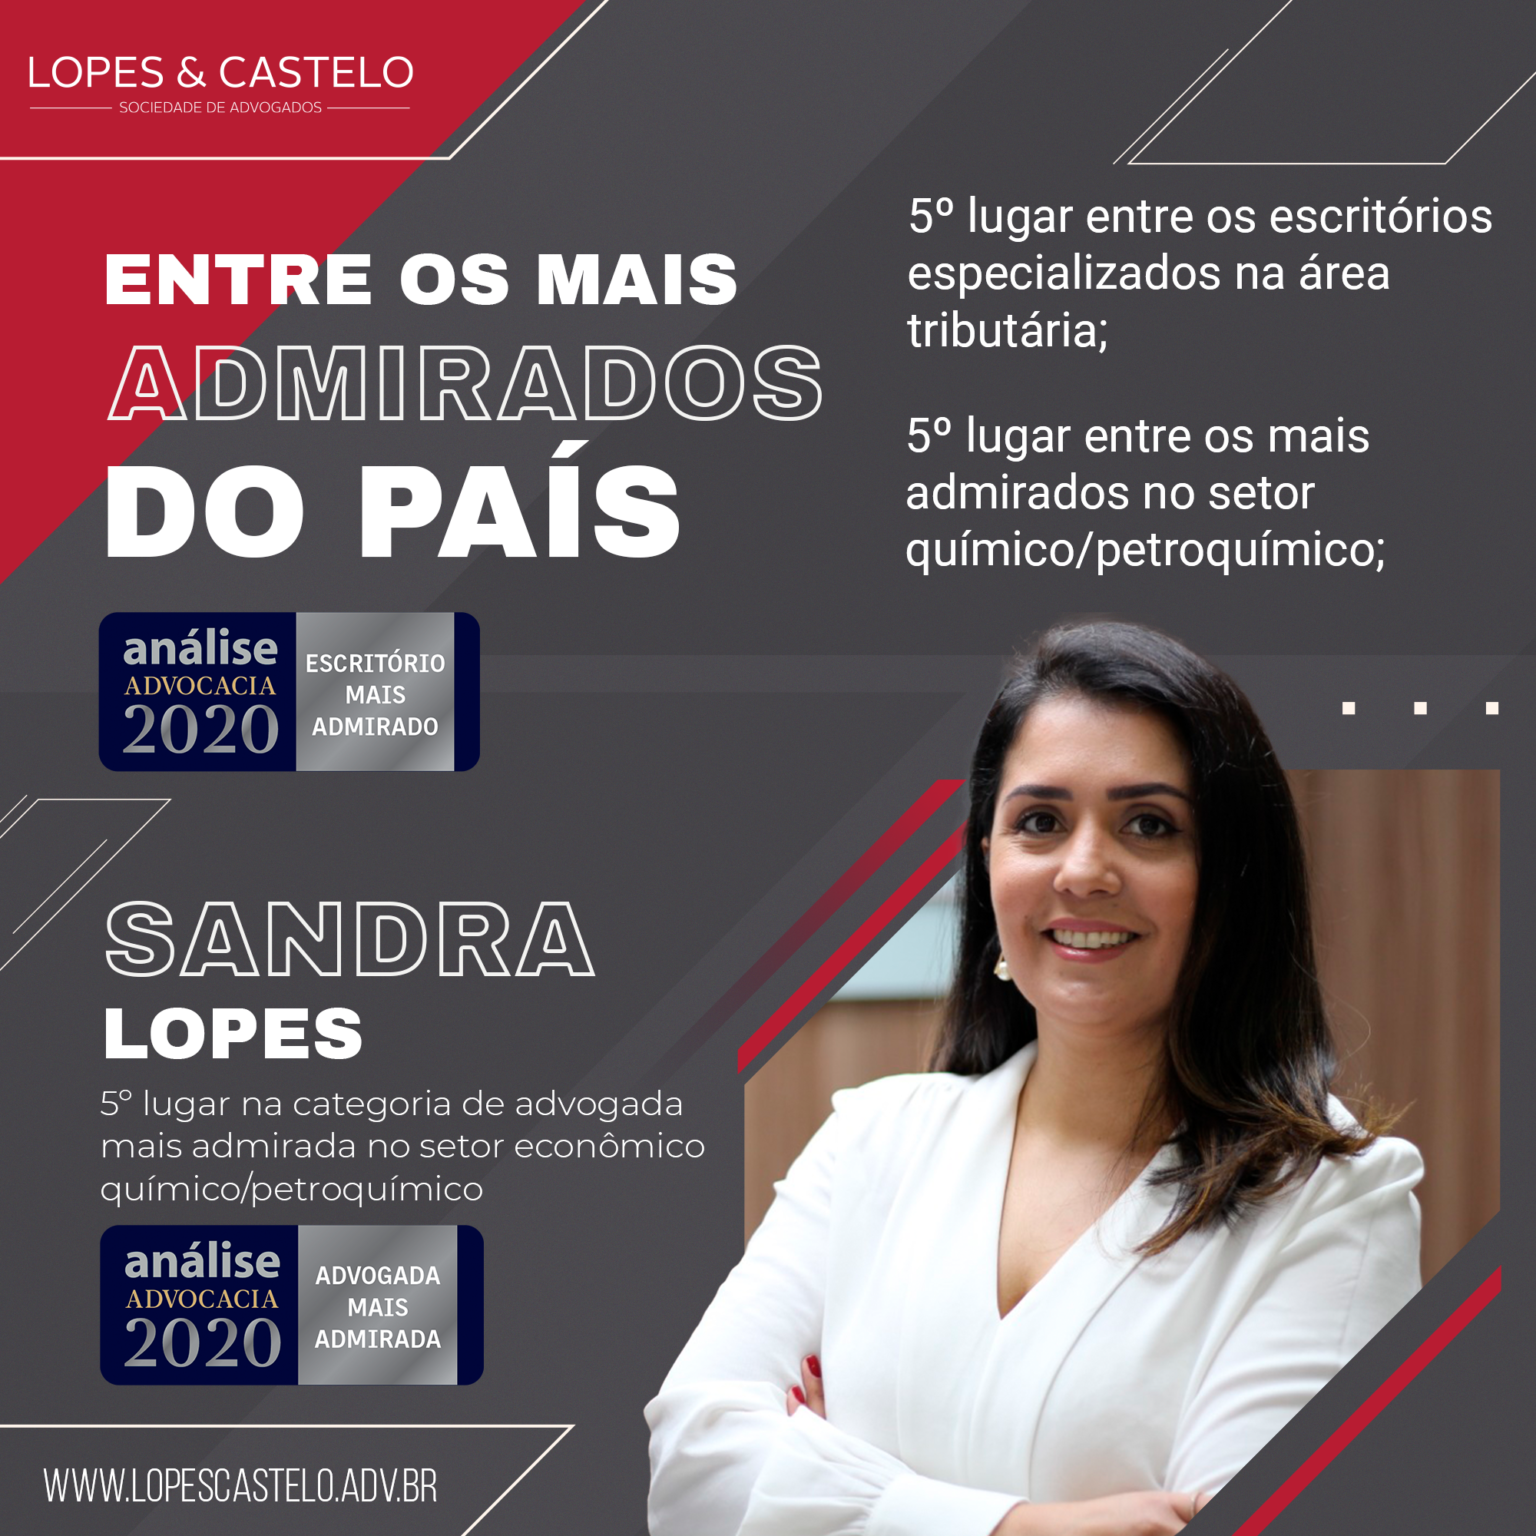 Lopes & Castelo – Entre os mais admirados do país